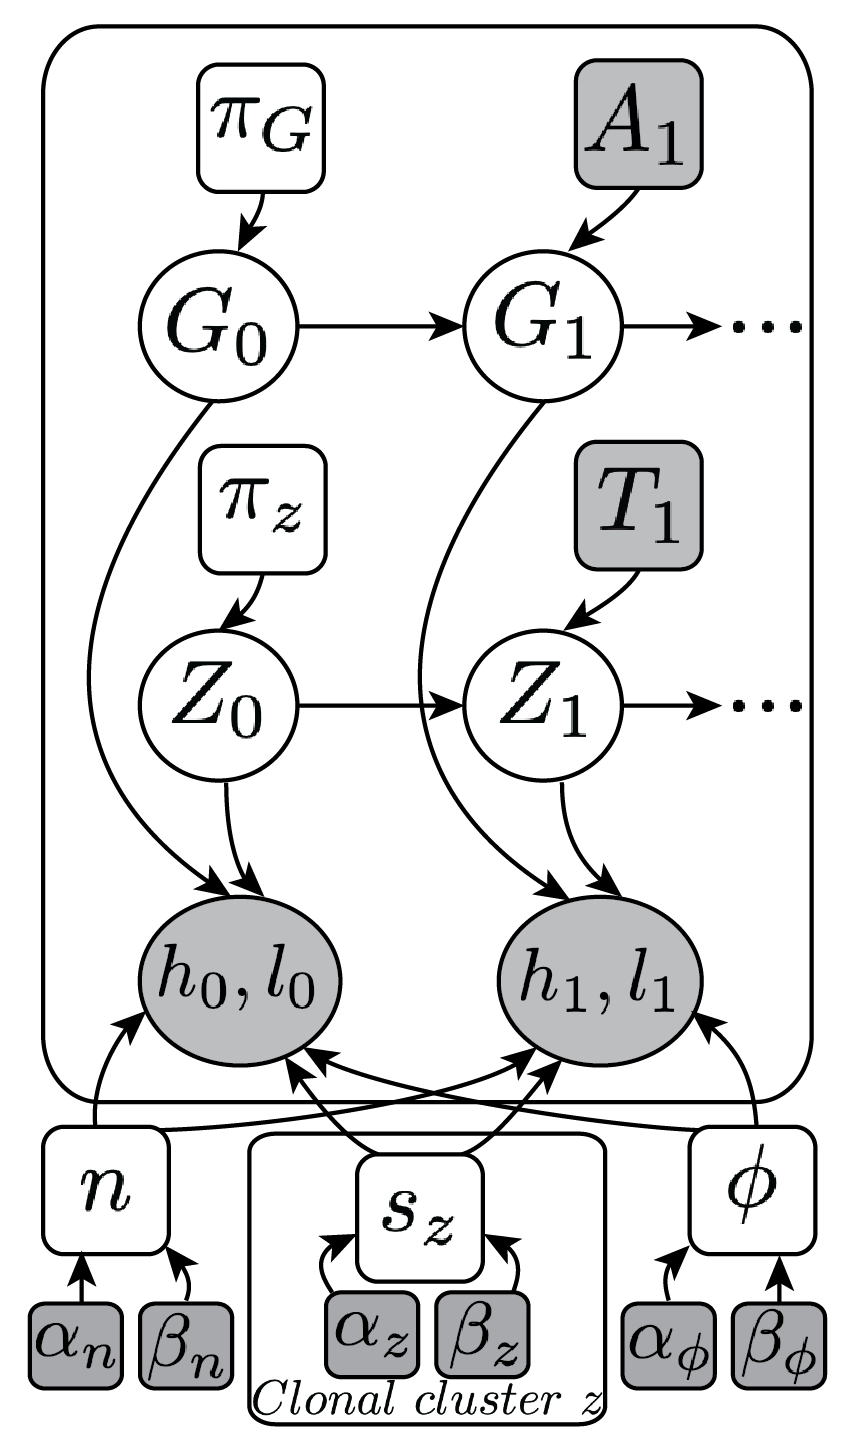 Probabilistic graphical model of TITAN